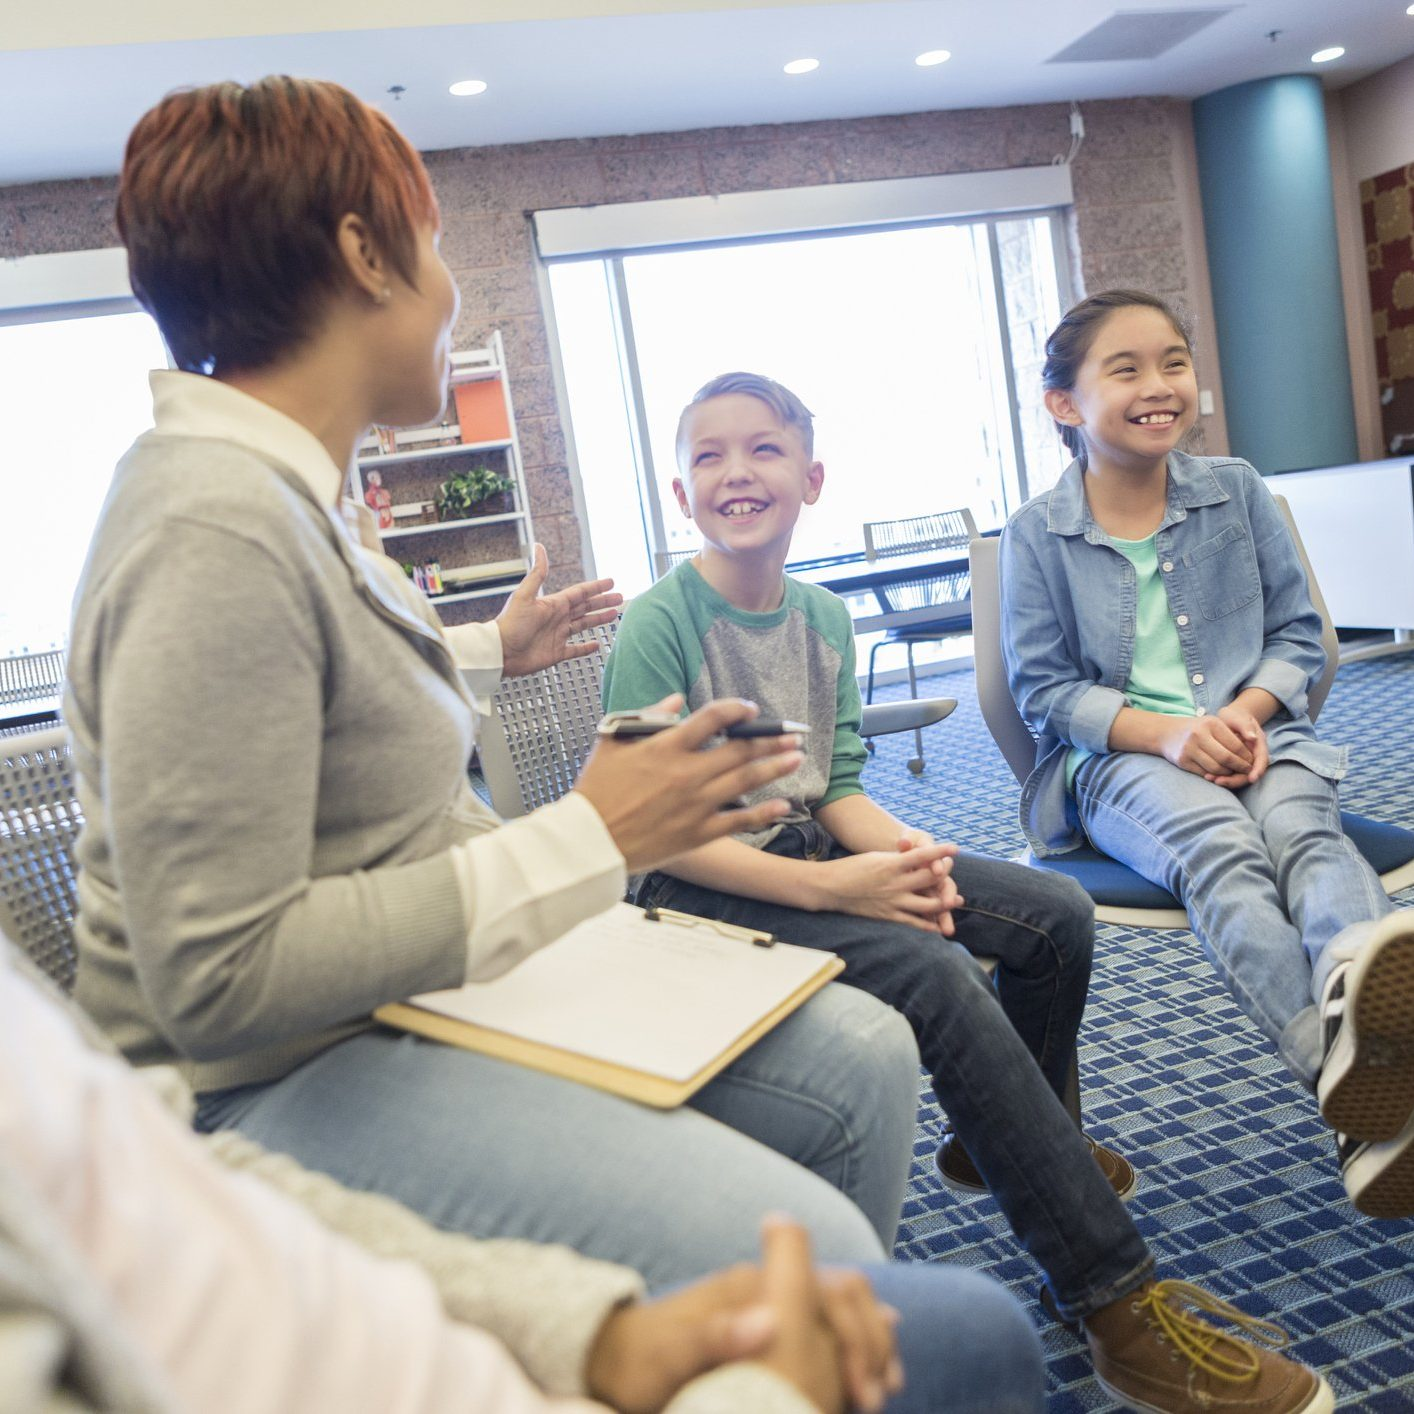 Confident mid adult teacher or school counselor talks with a group of male and female students.